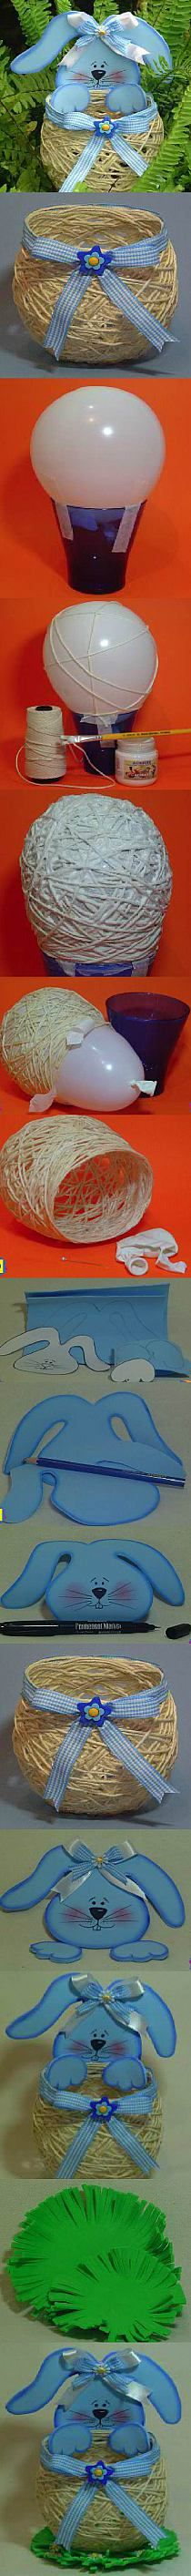 Easter is around the corner ! Here is a super cute idea to make a yarn DIY string Easter basket. The secret is using a balloon. Easter Party, Easter Gift, Happy Easter, Easter Bunny, Easter Eggs, Easter Projects, Easter Crafts, Spring Crafts, Holiday Crafts